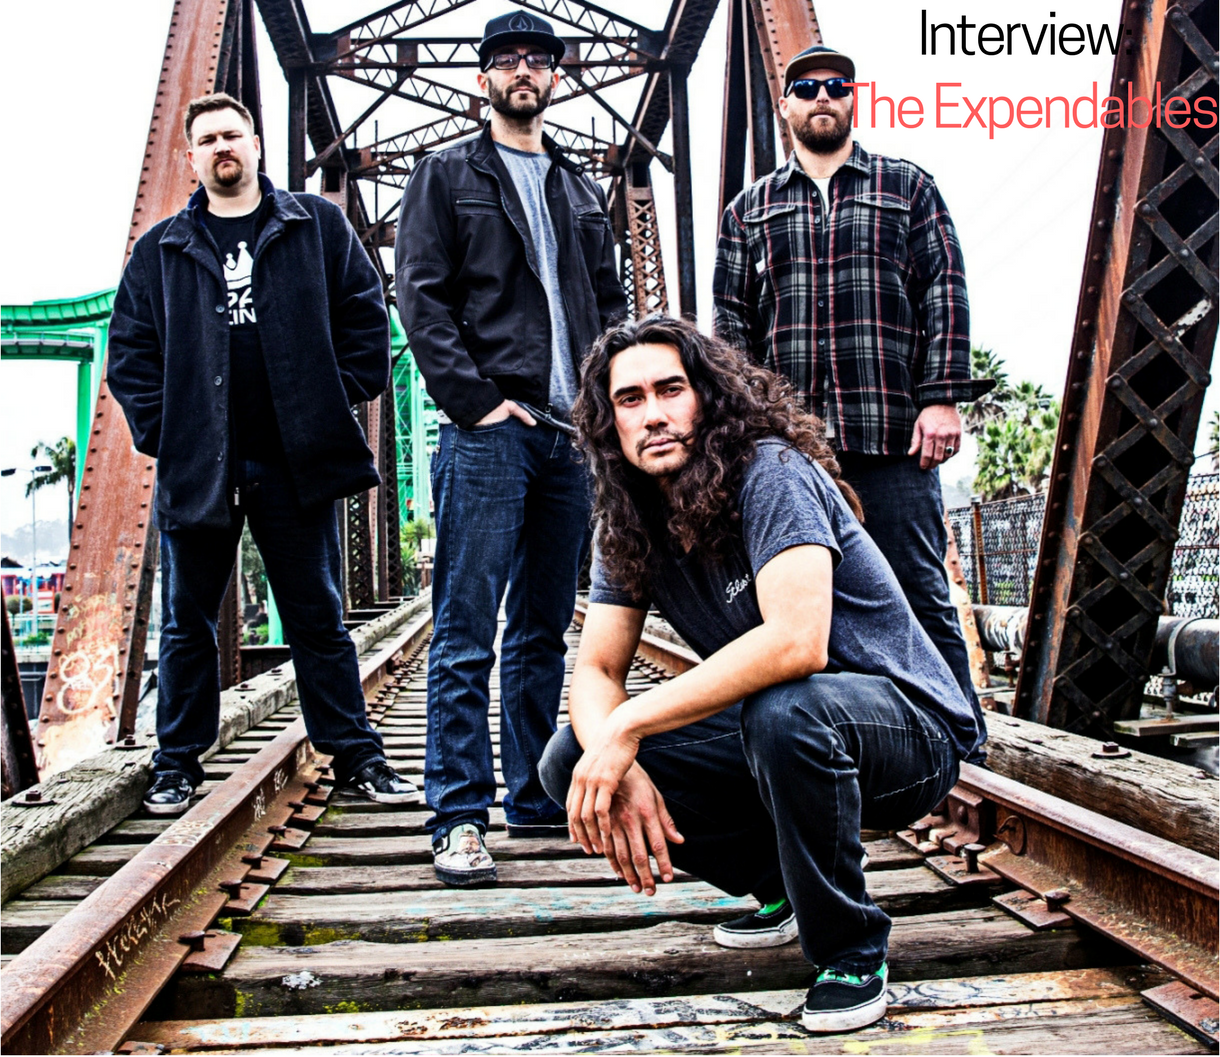 Interview: The Expendables